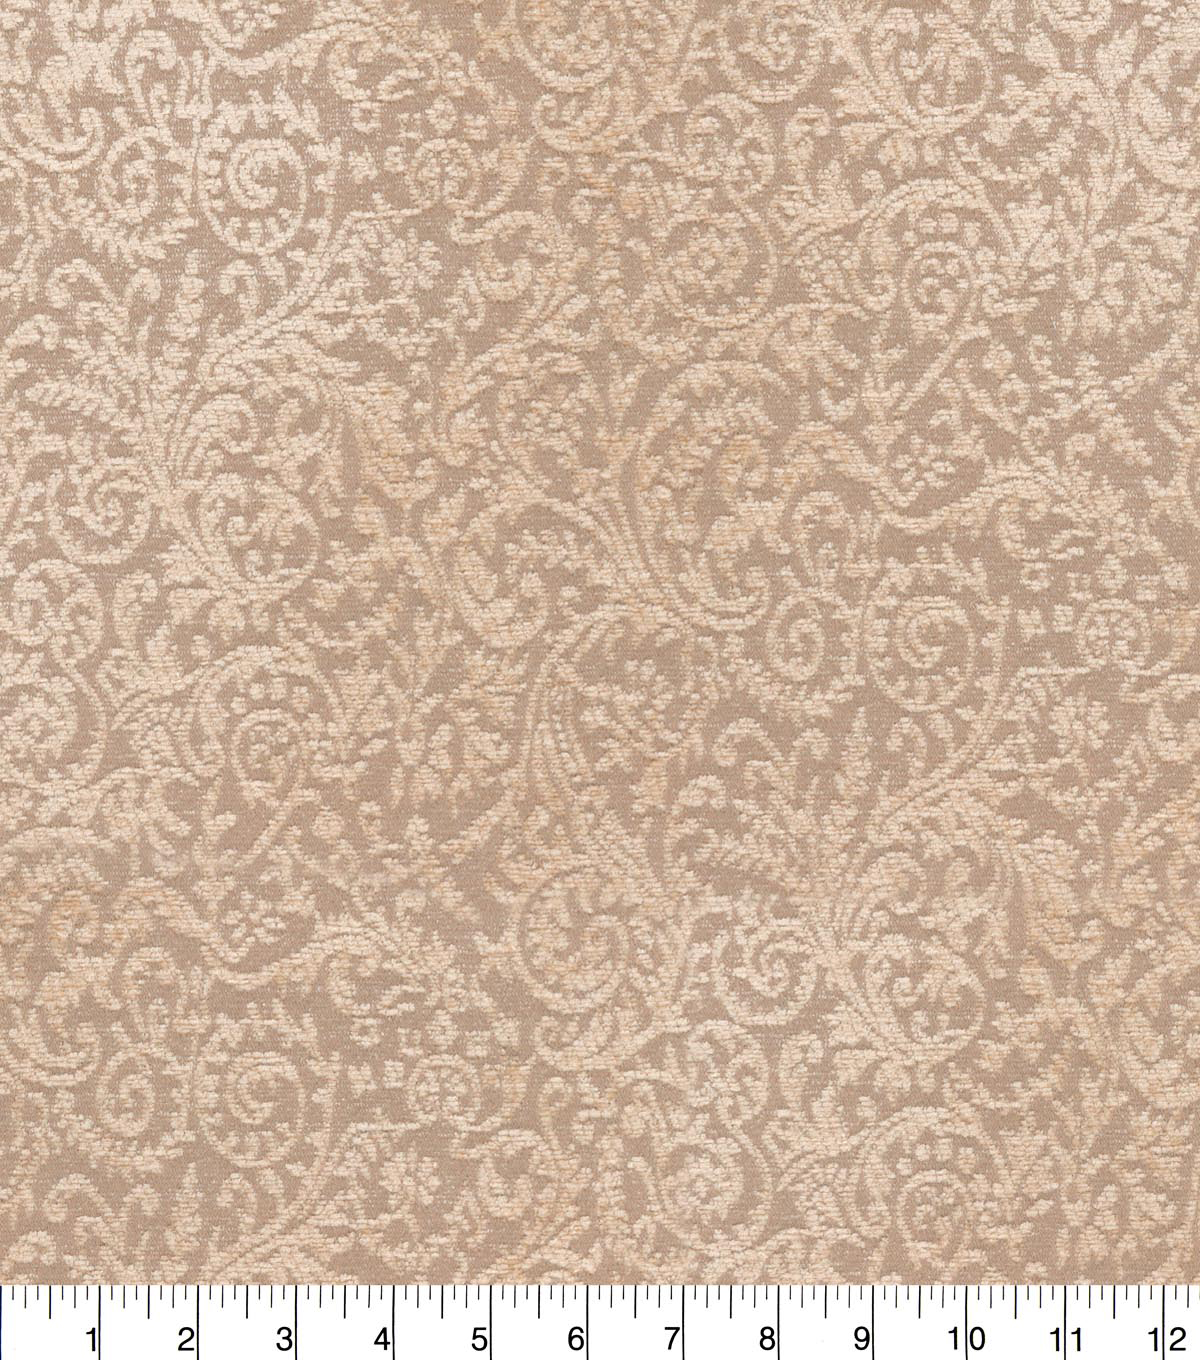 Home Decor 8\u0022x8\u0022 Fabric Swatch-Waverly New Stetson Twine